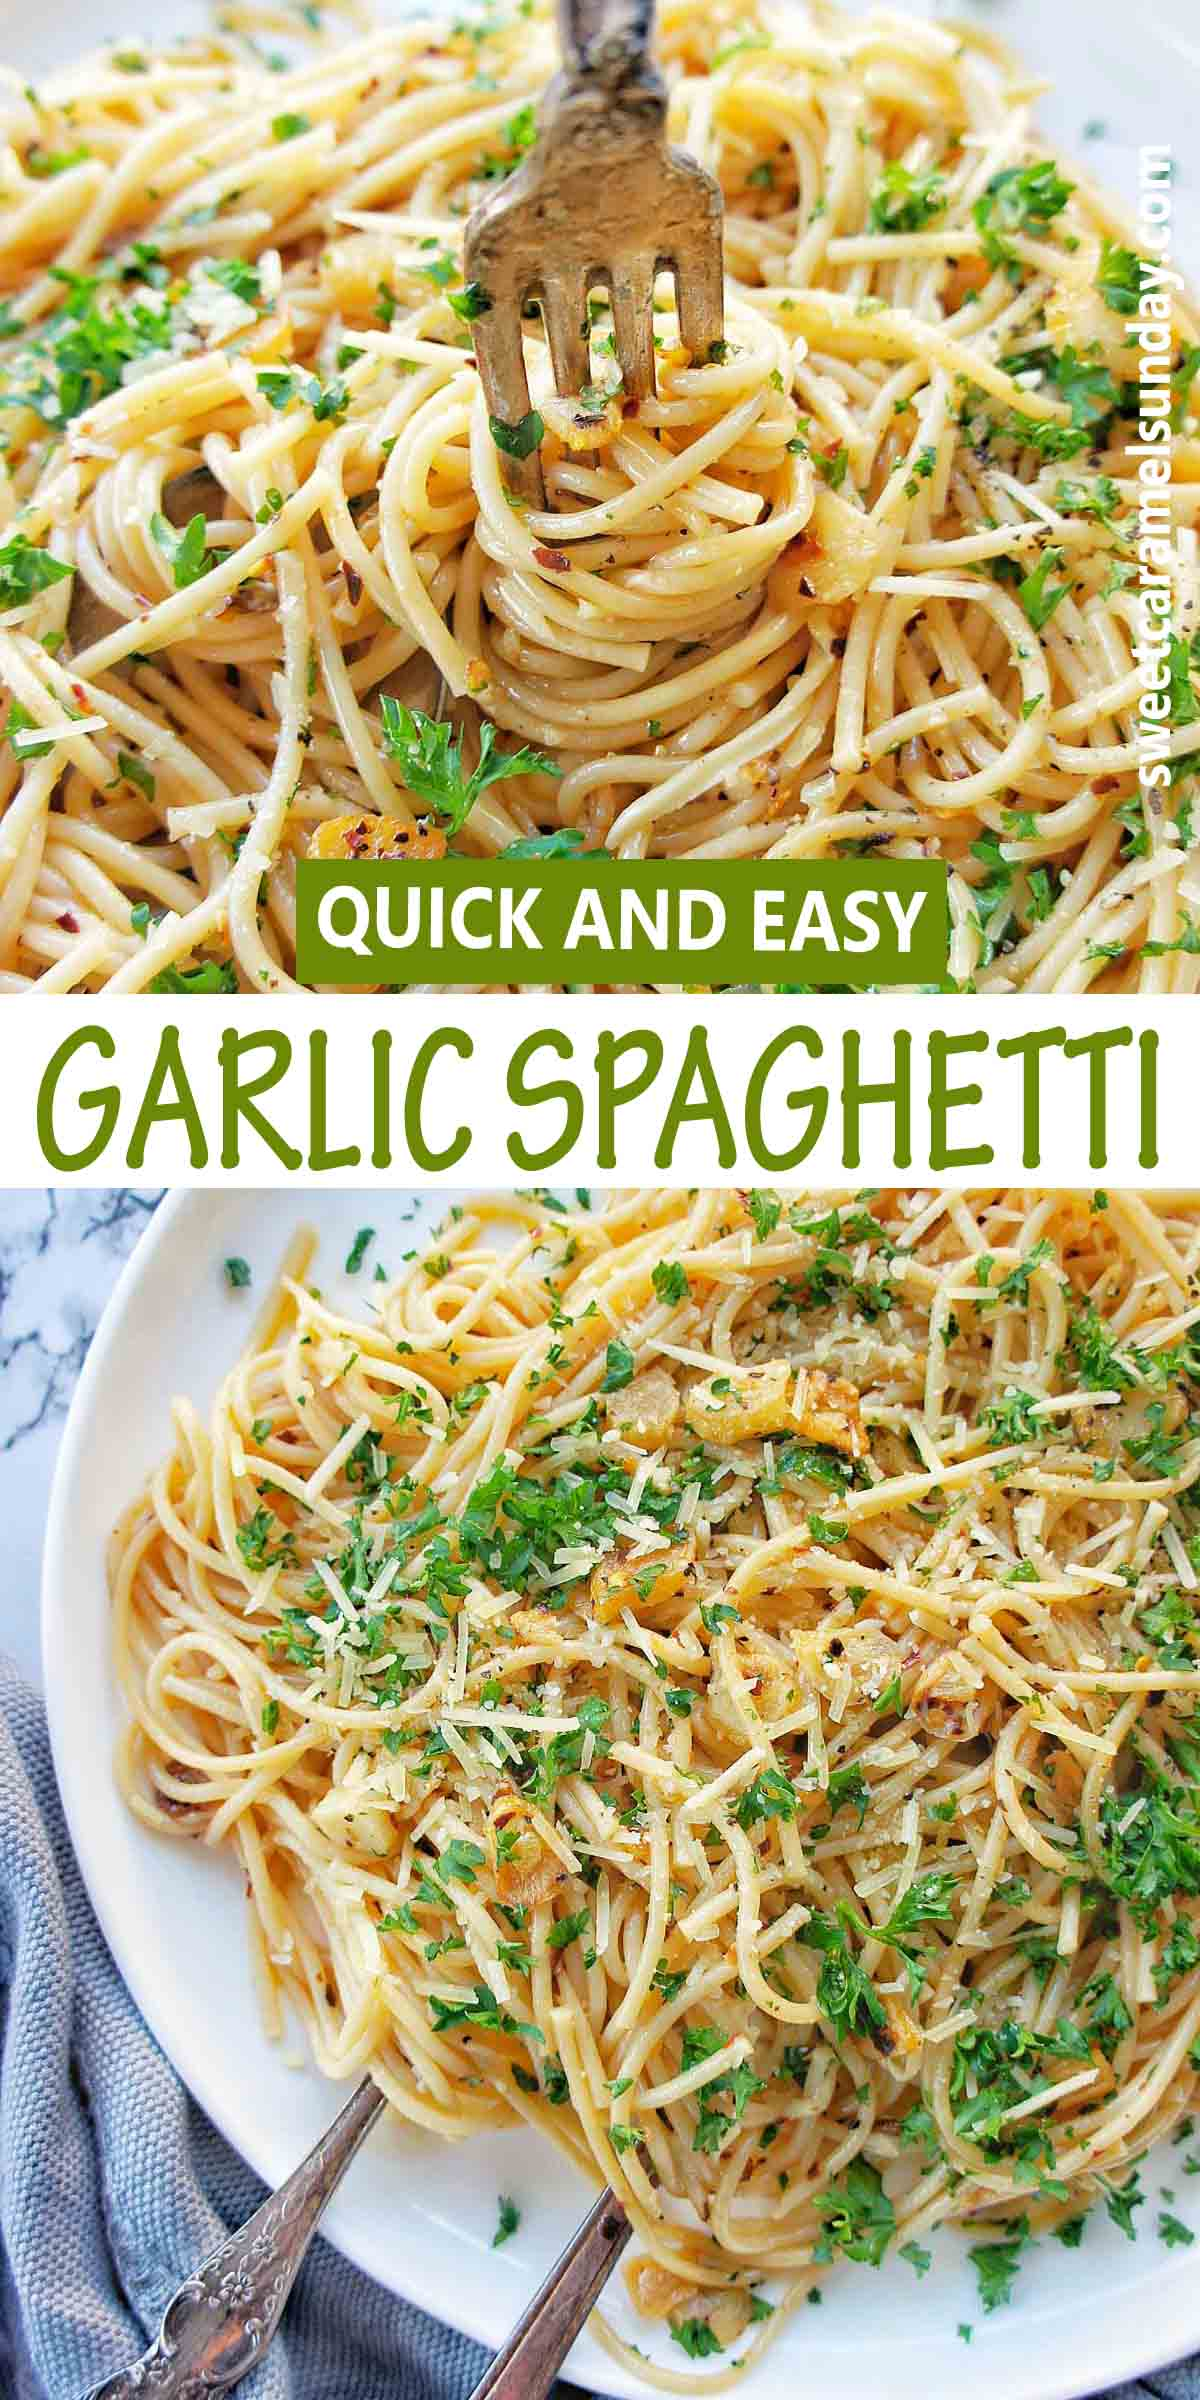 Garlic Spaghetti with text over lay